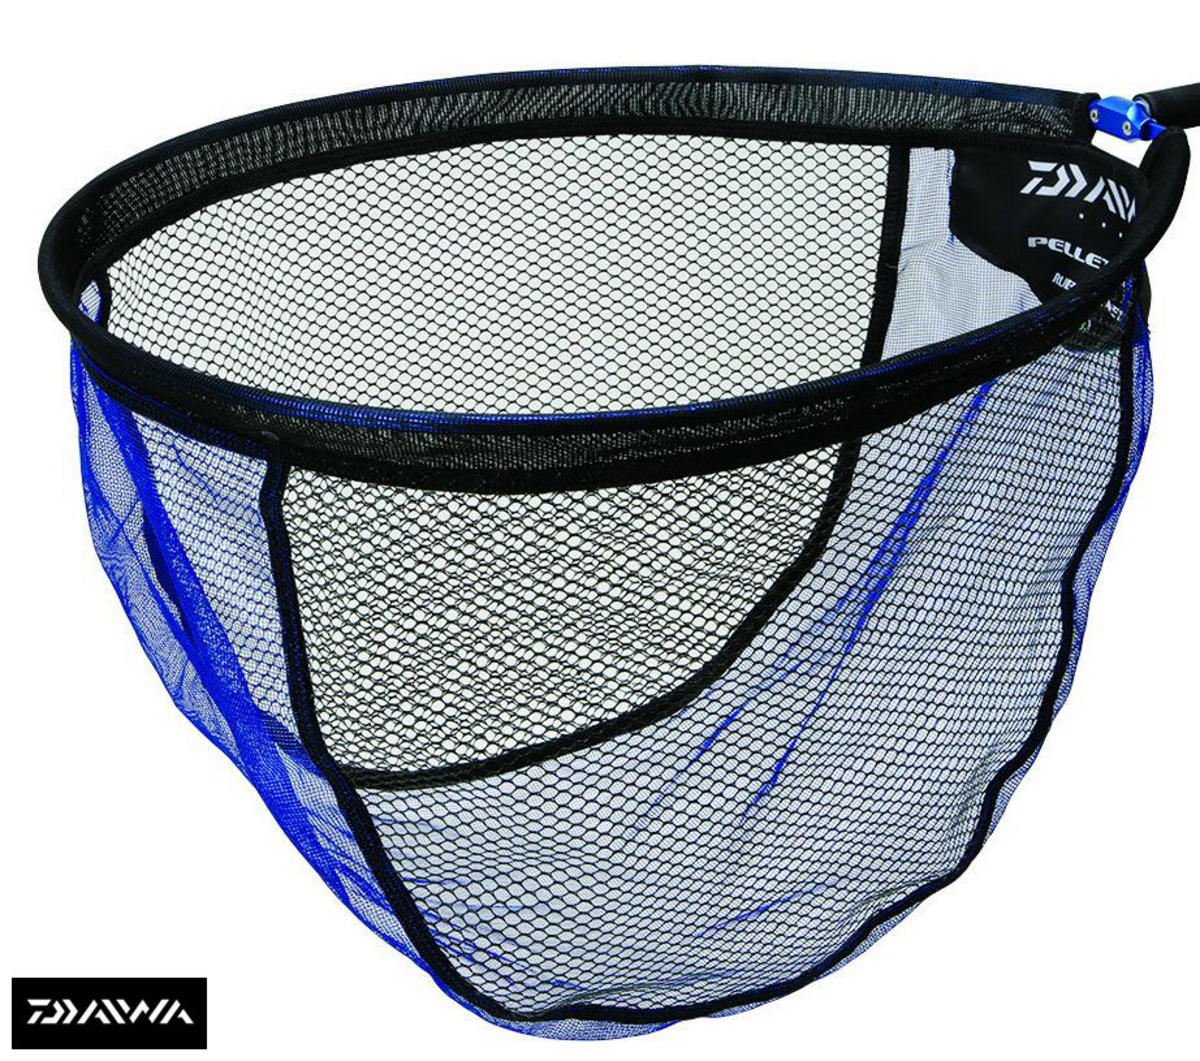 NEW DAIWA PELLET MESH RUBBER LANDING NET HEAD - ALL SIZES AVAILABLE